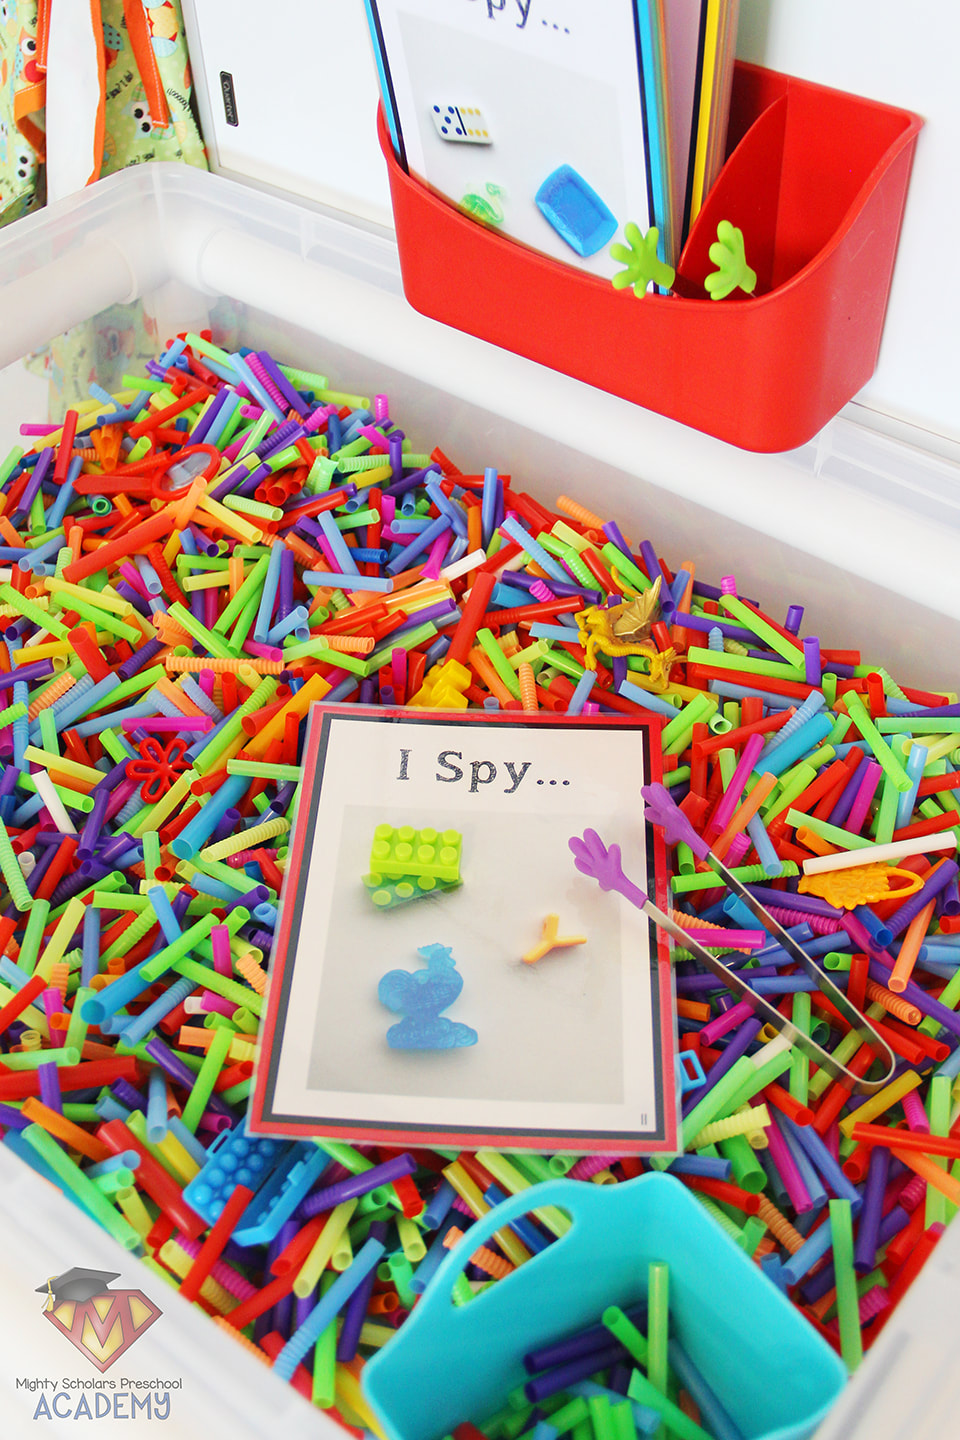 Five Senses: I Spy Sensory Table - Mighty Scholars Preschool